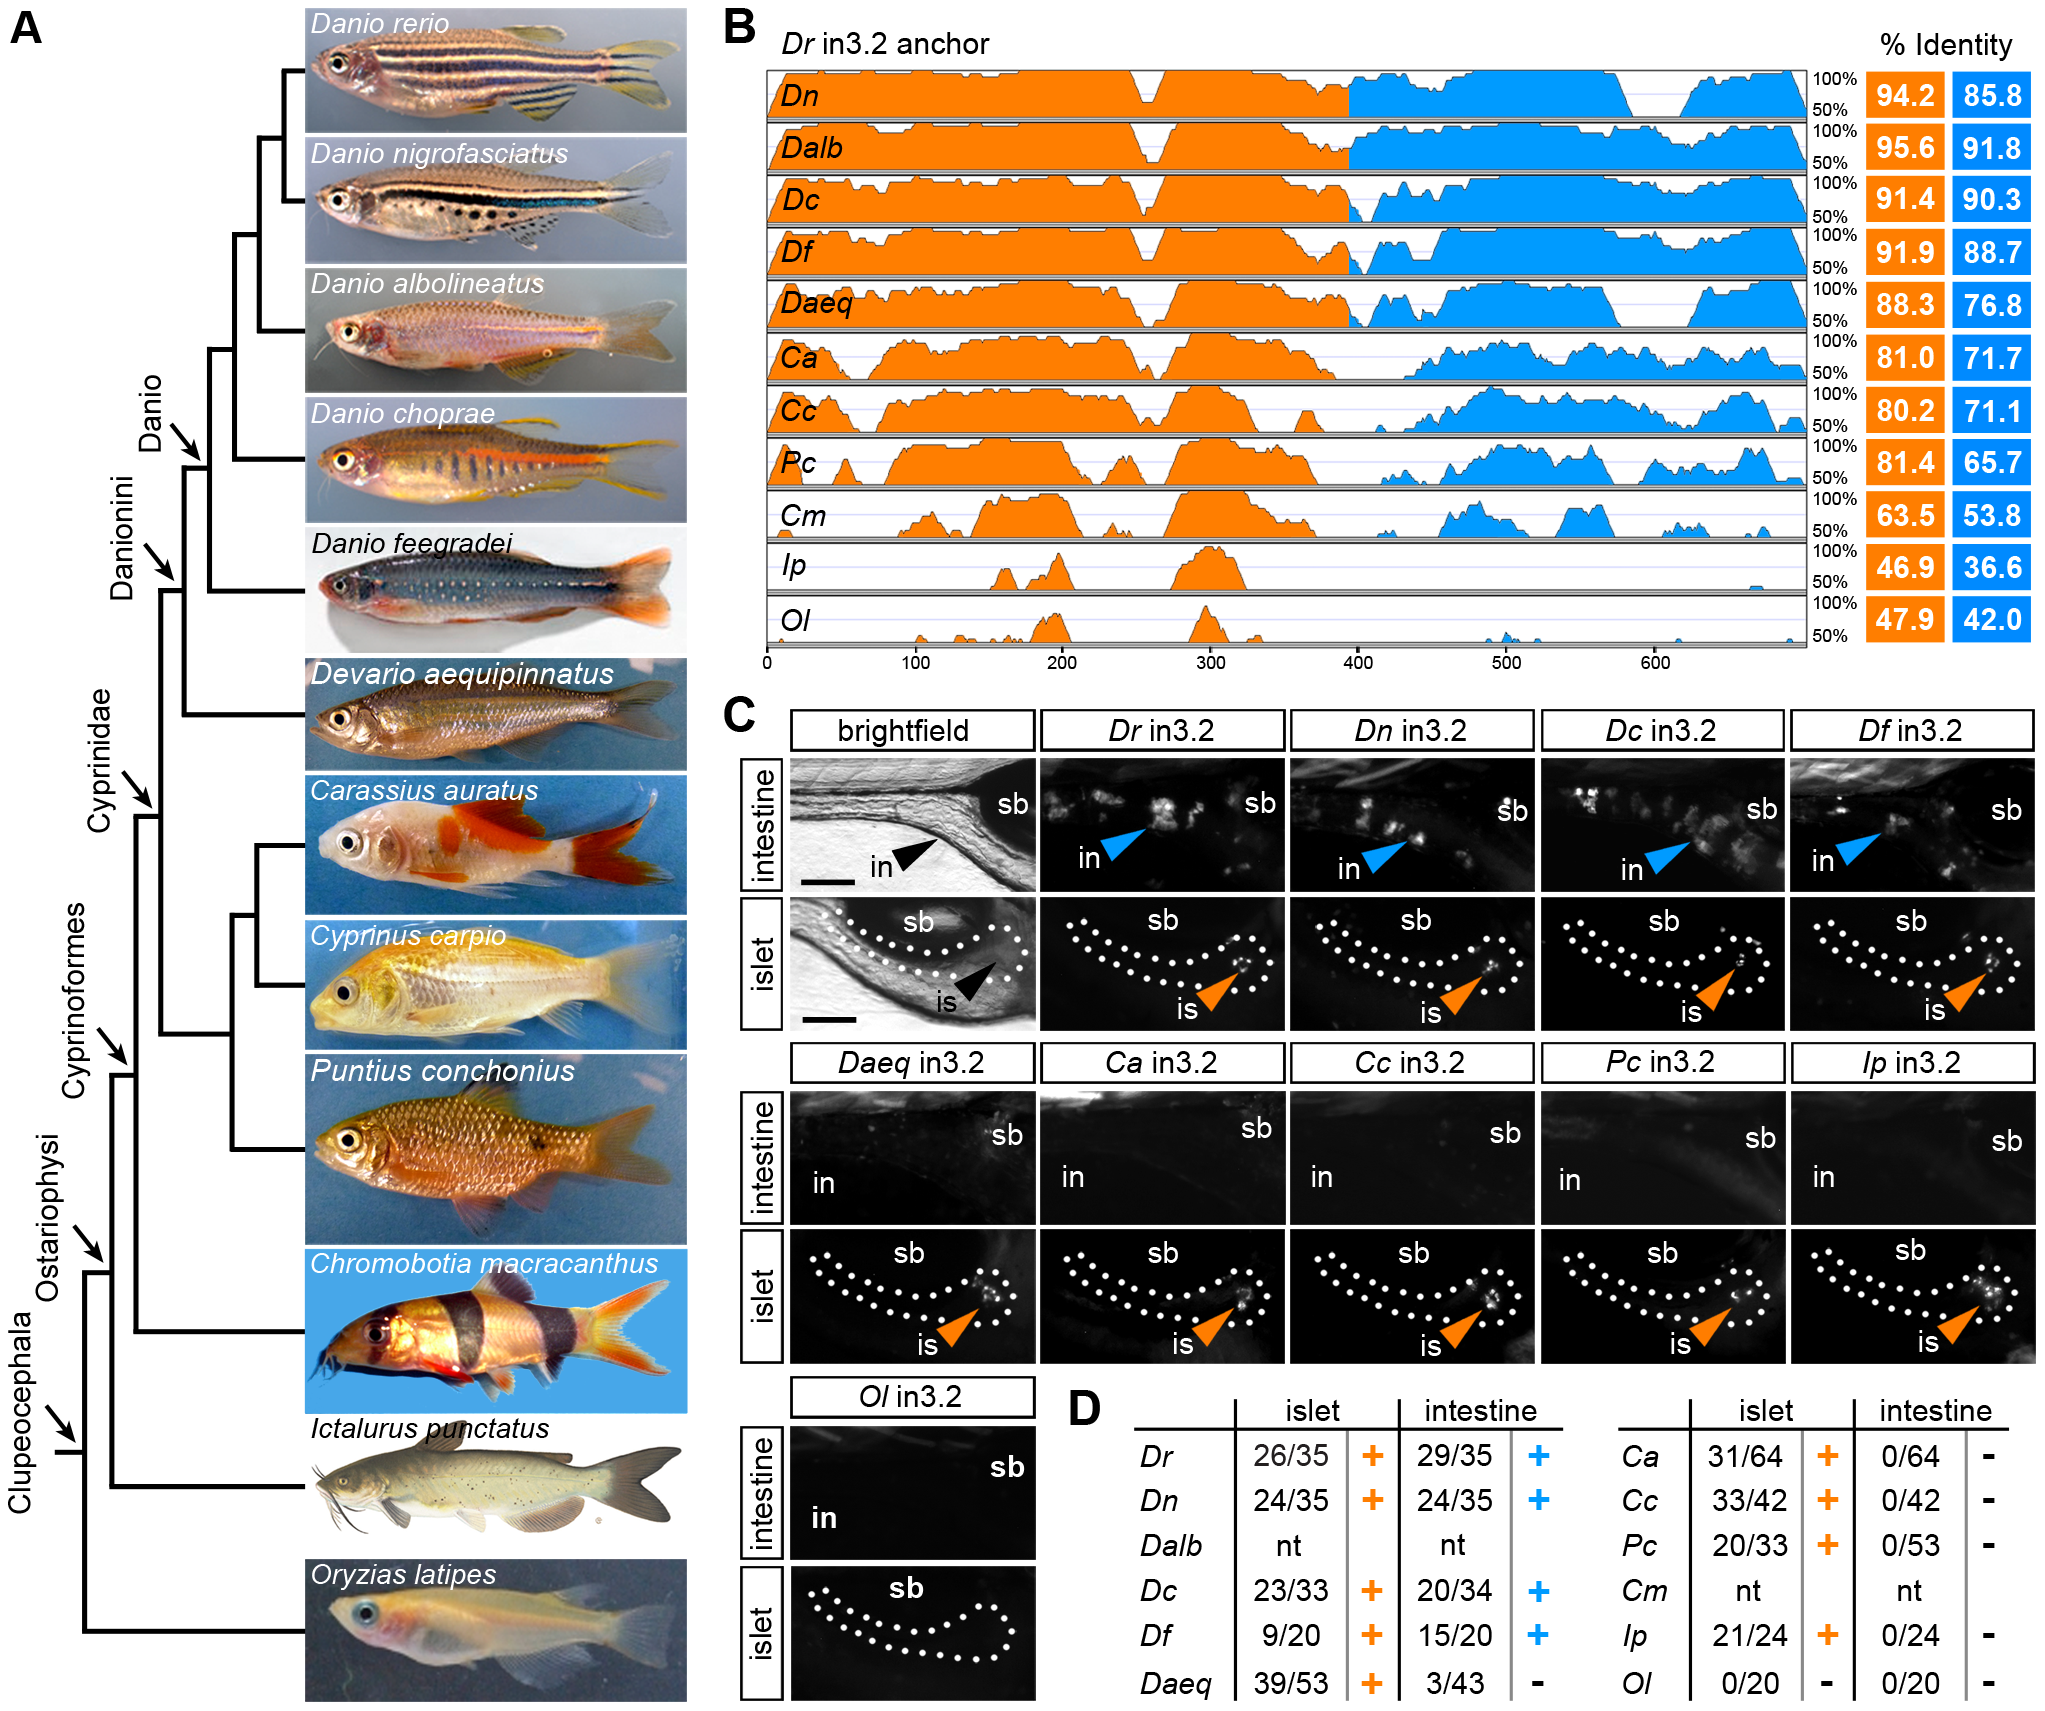 Functional evolution of the islet and intestinal regulatory modules in 12 fish species.